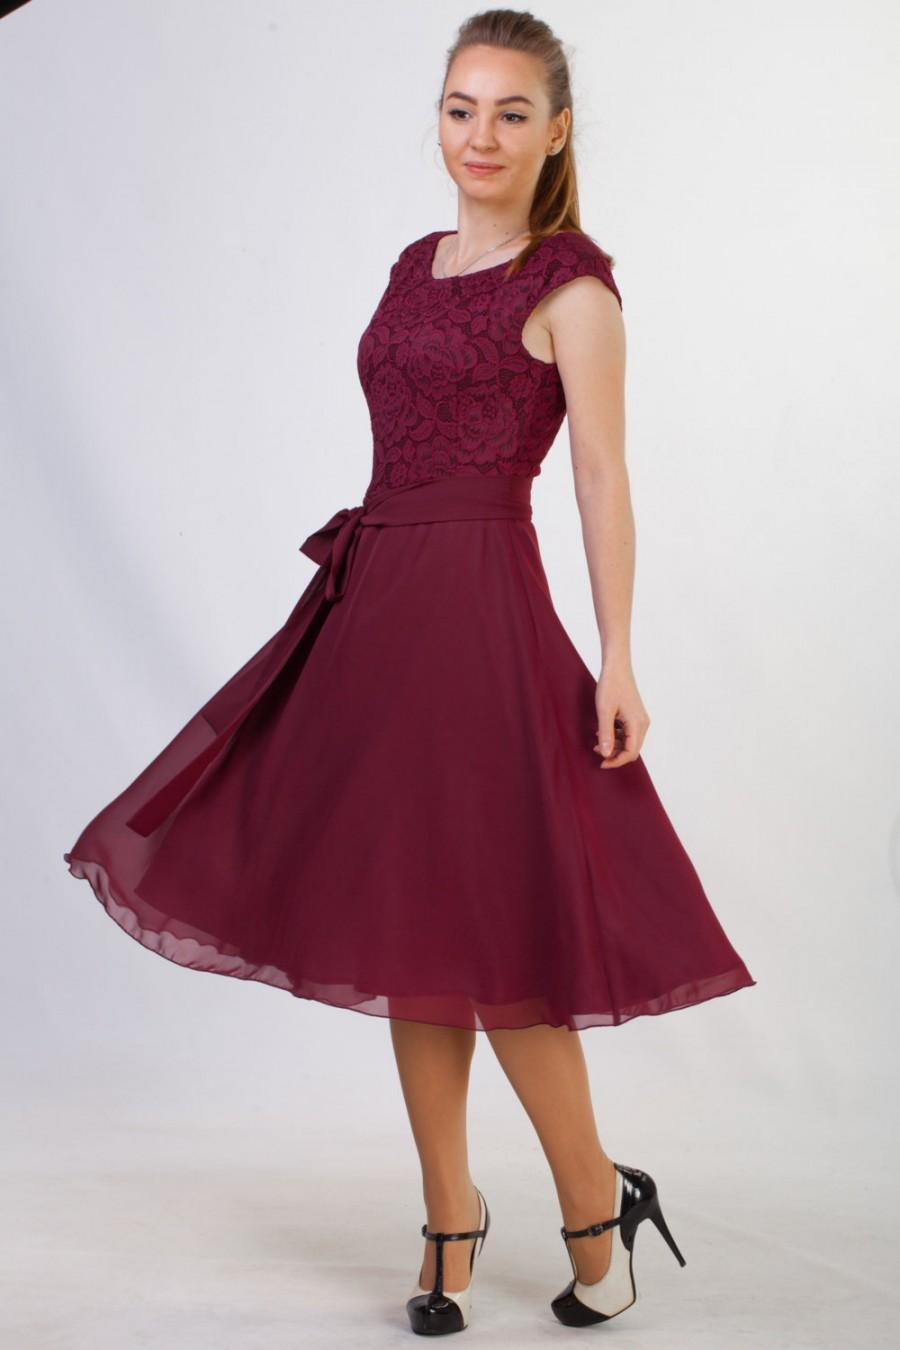 Short Burgundy Lace Dress Bridesmaid 15 Colors